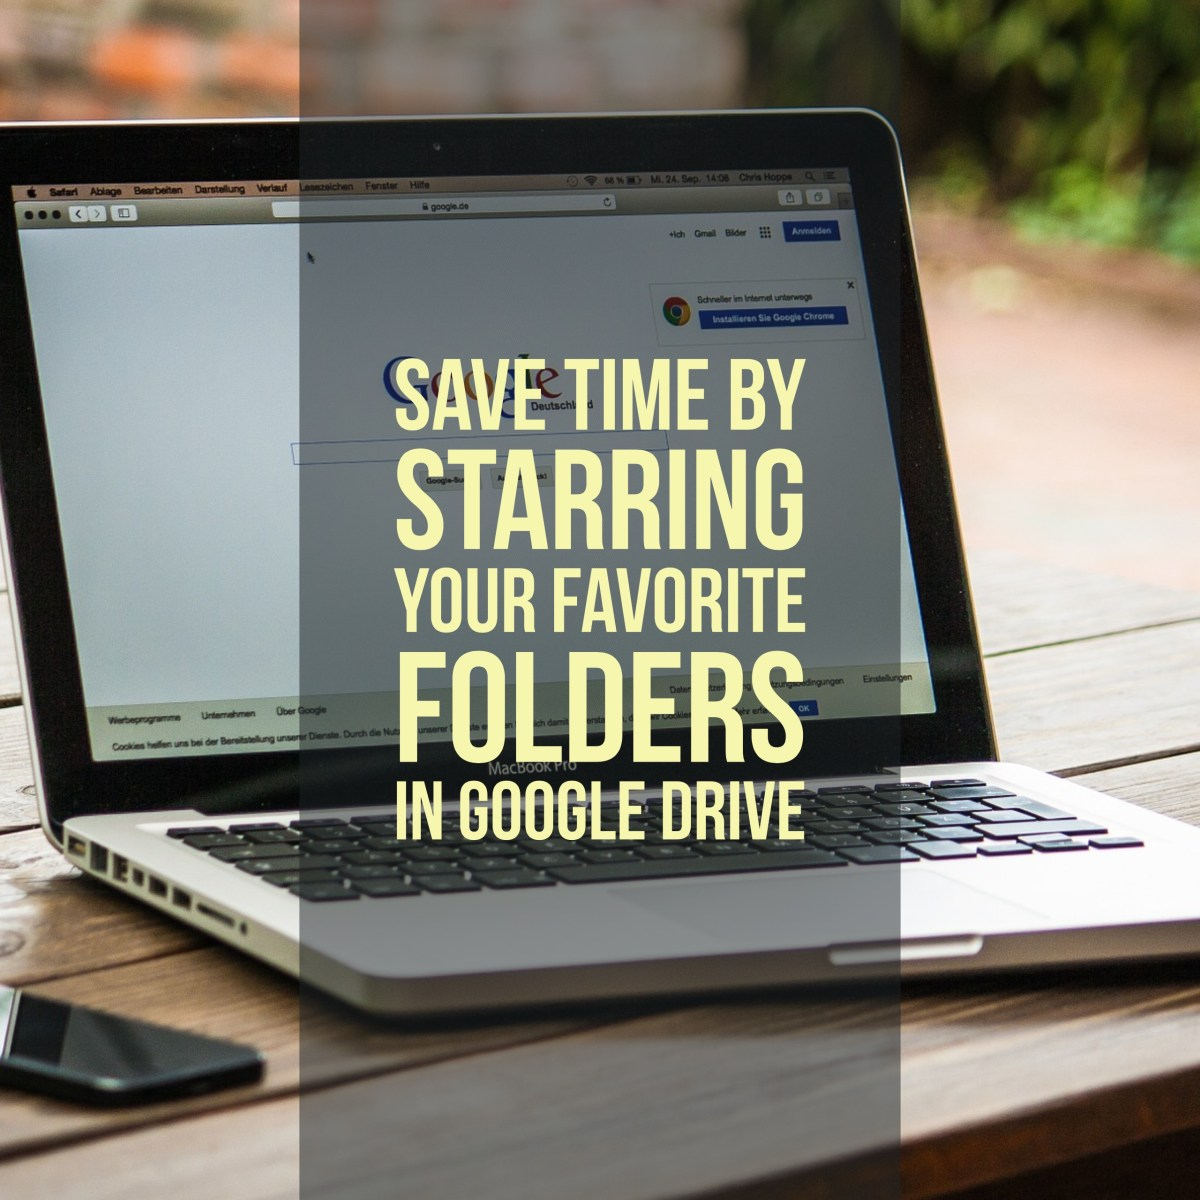 Save time by starring your favorite folders in Google Drive